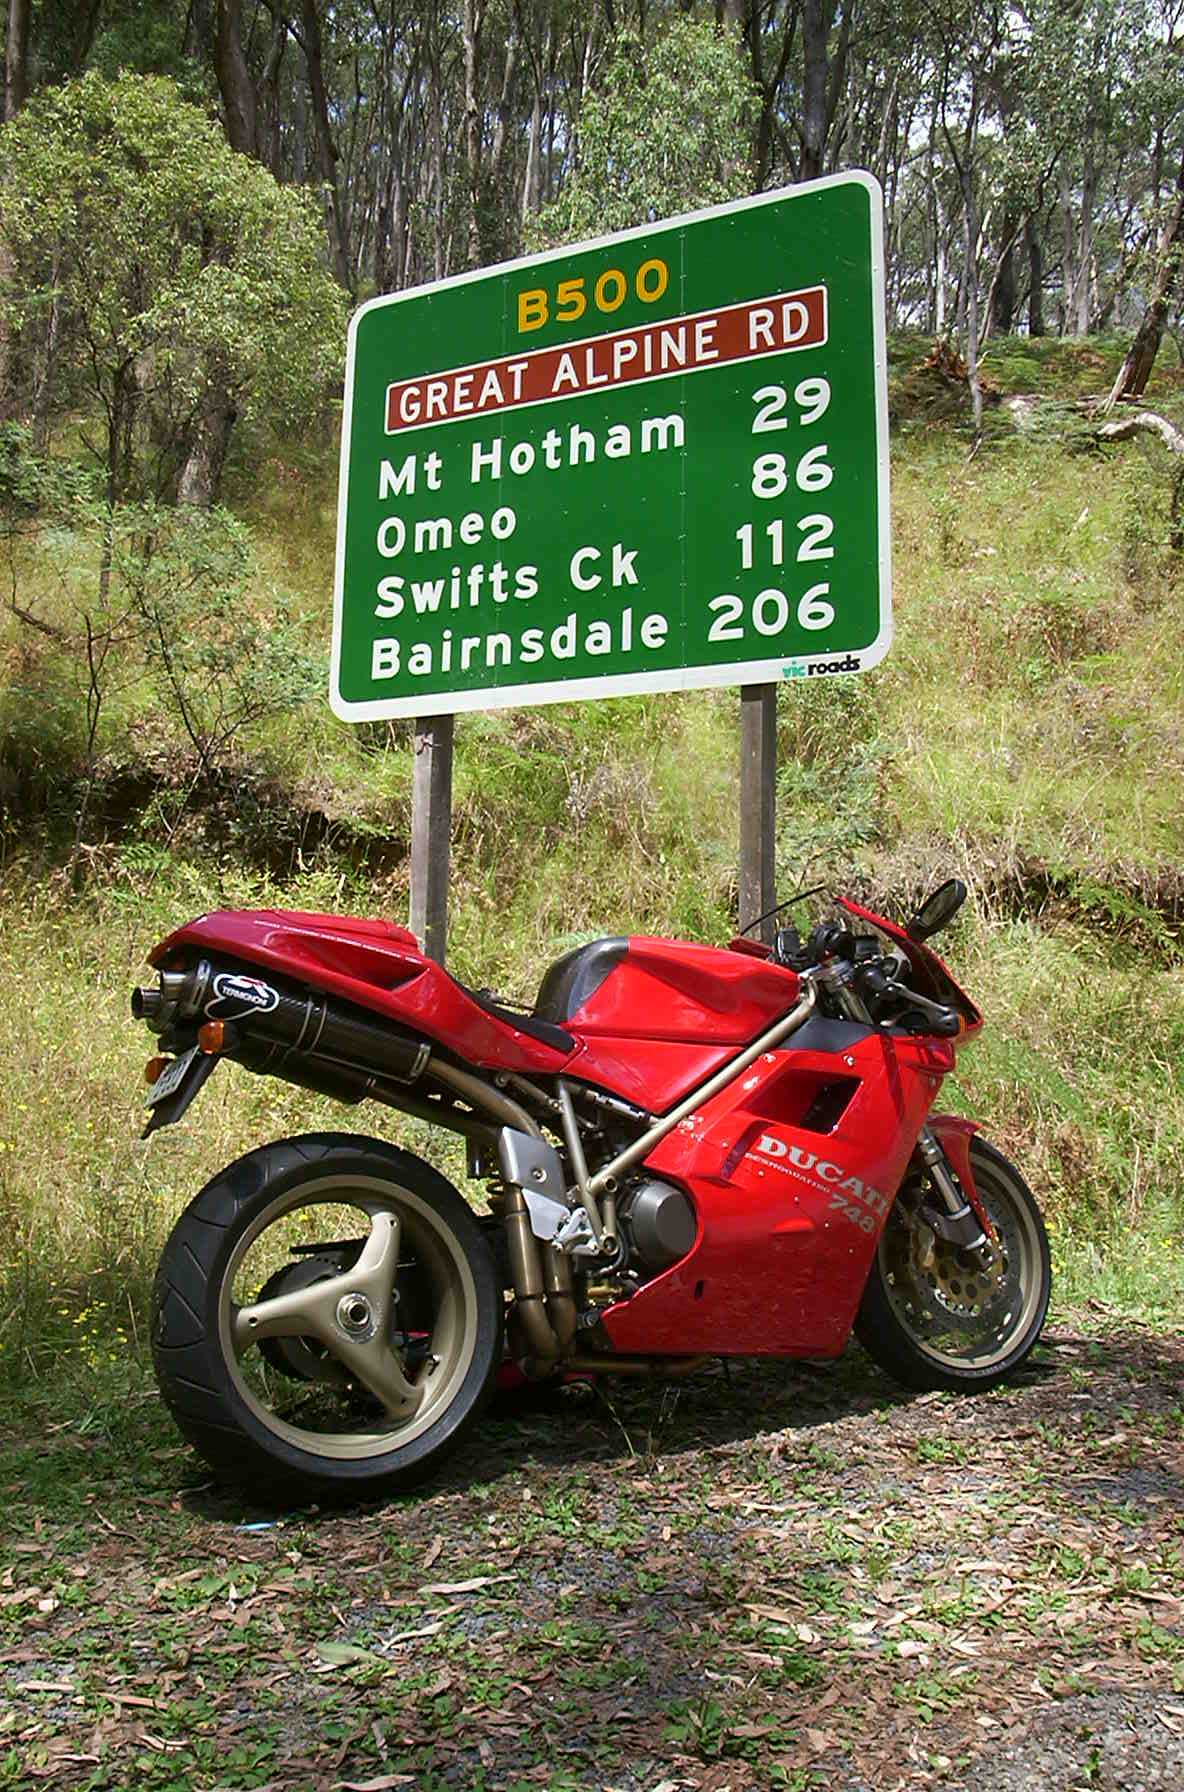 31/01/02.748 Gr Alpine Rd, just out of Harretville